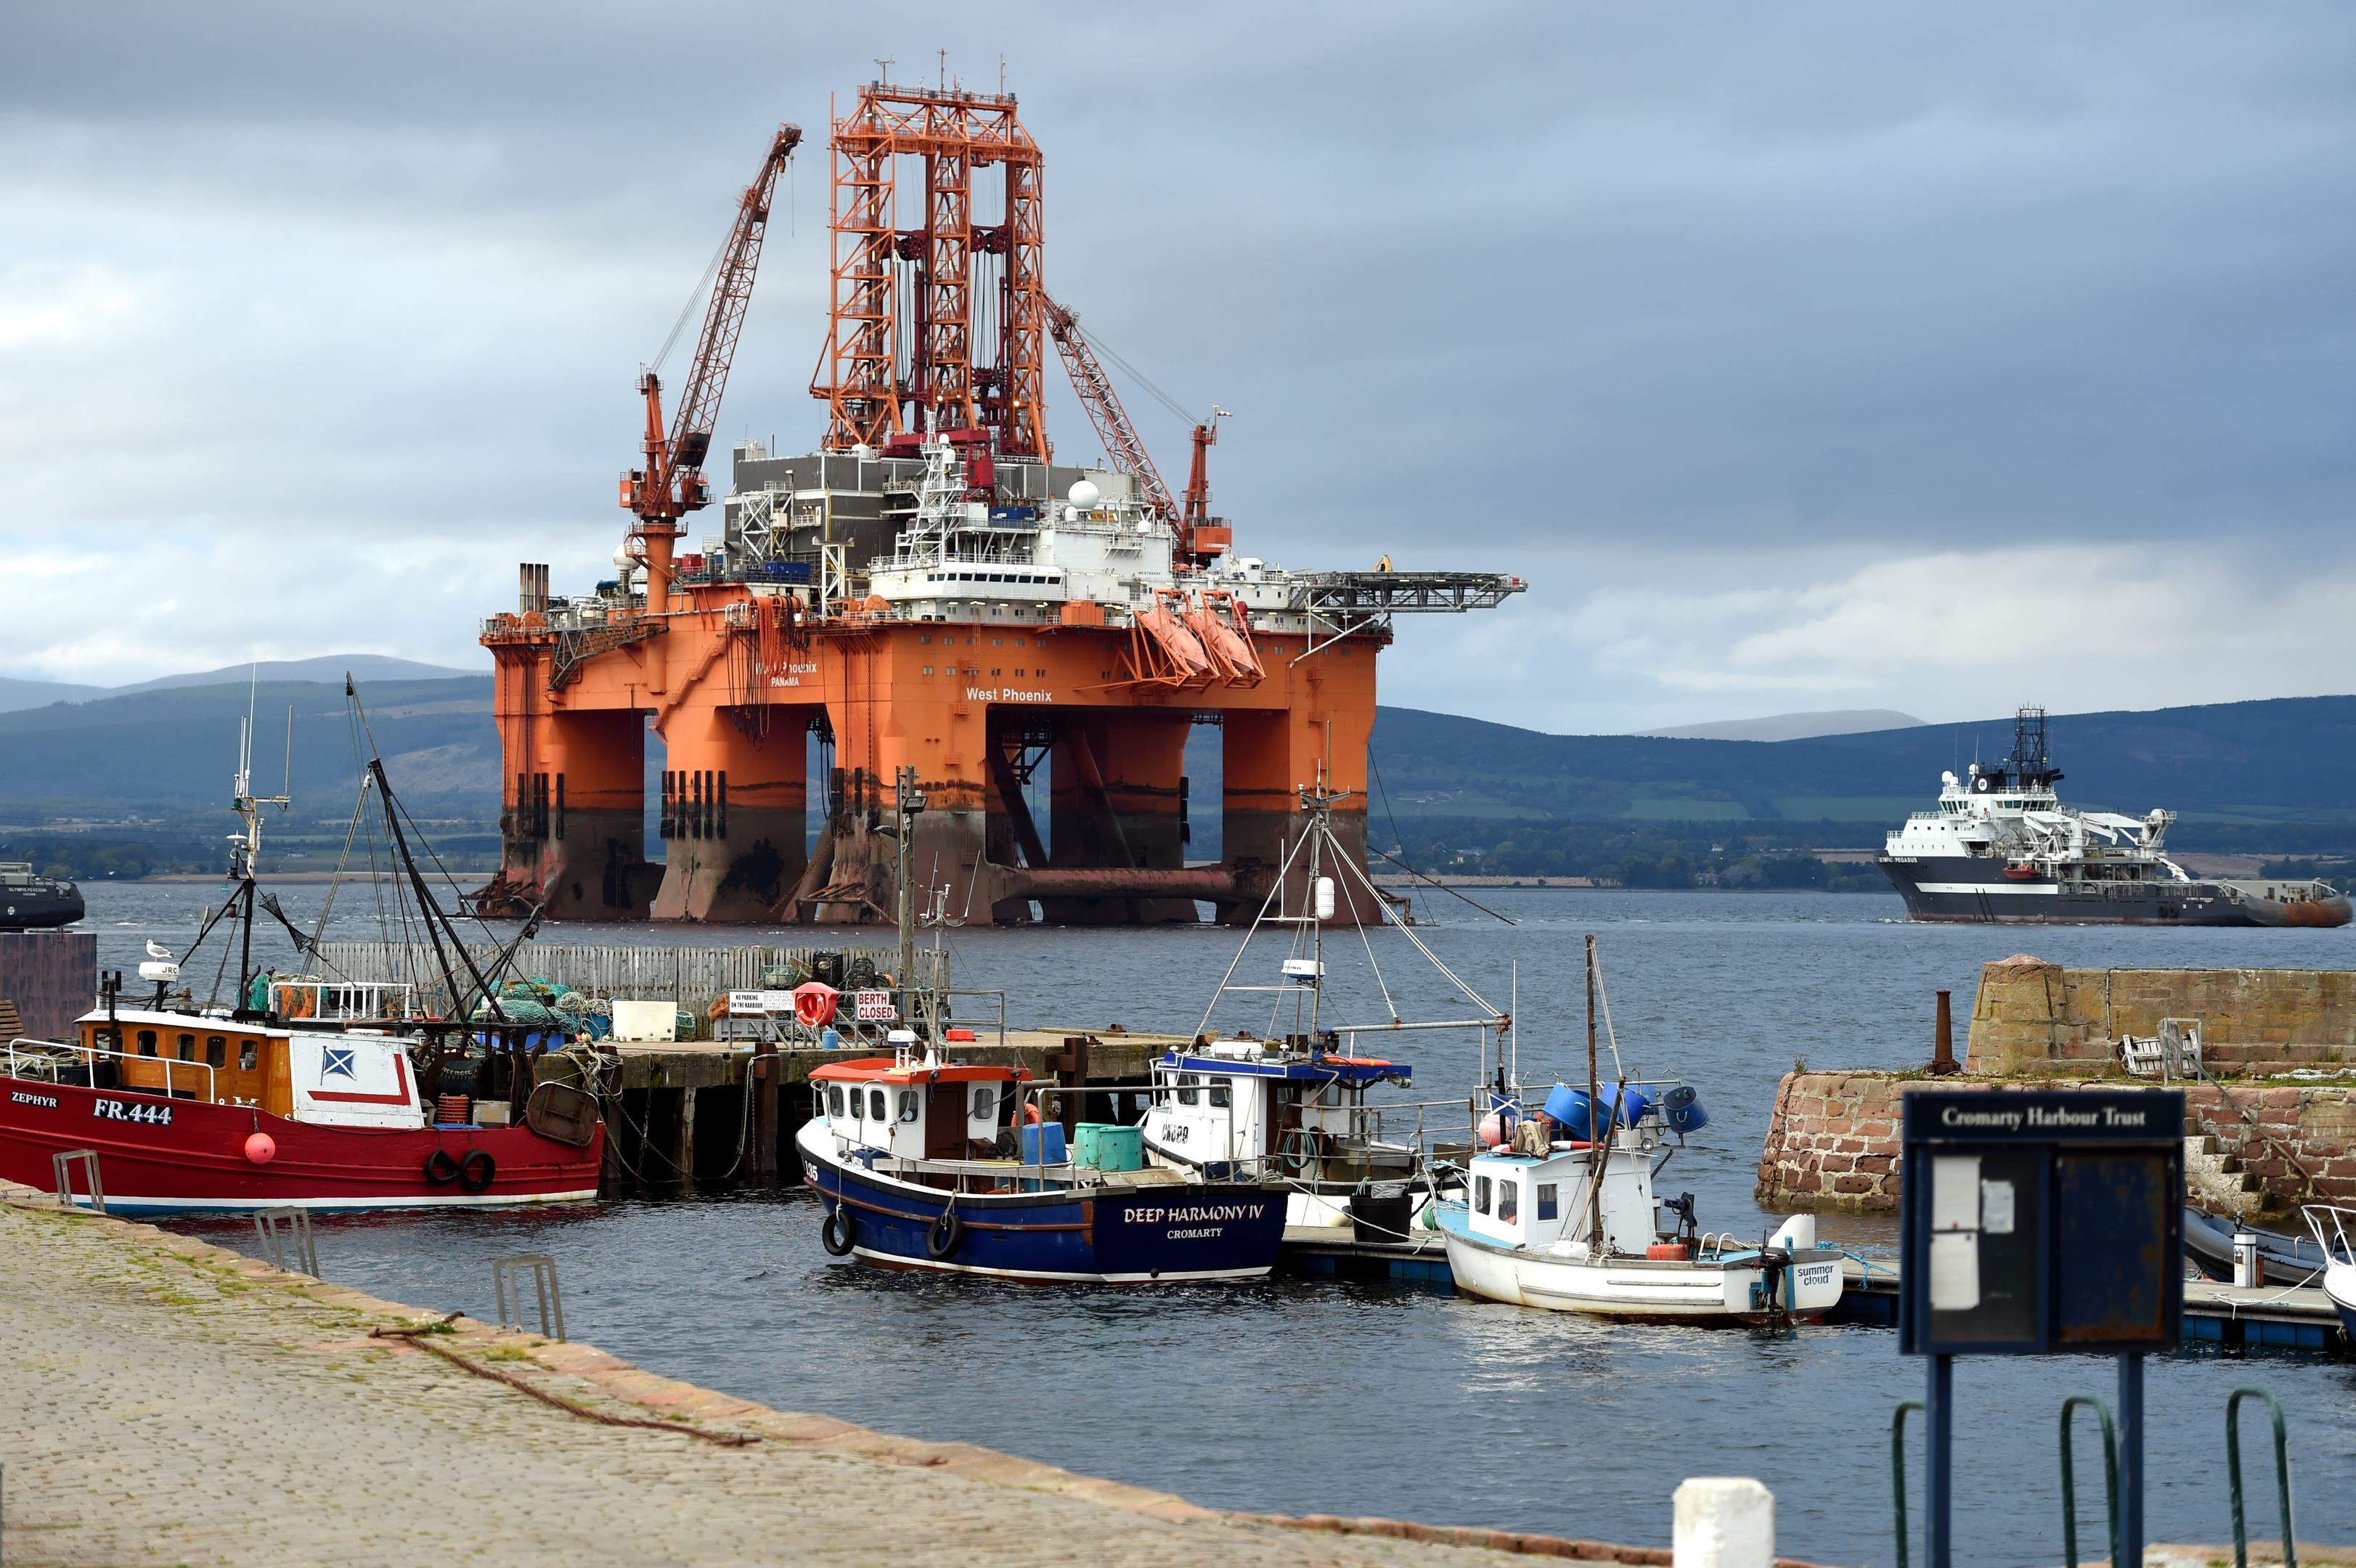 The oil rig, West Phoenix, which has been towed into Cromarty. Picture by Gordon Lennox 19/10/2015